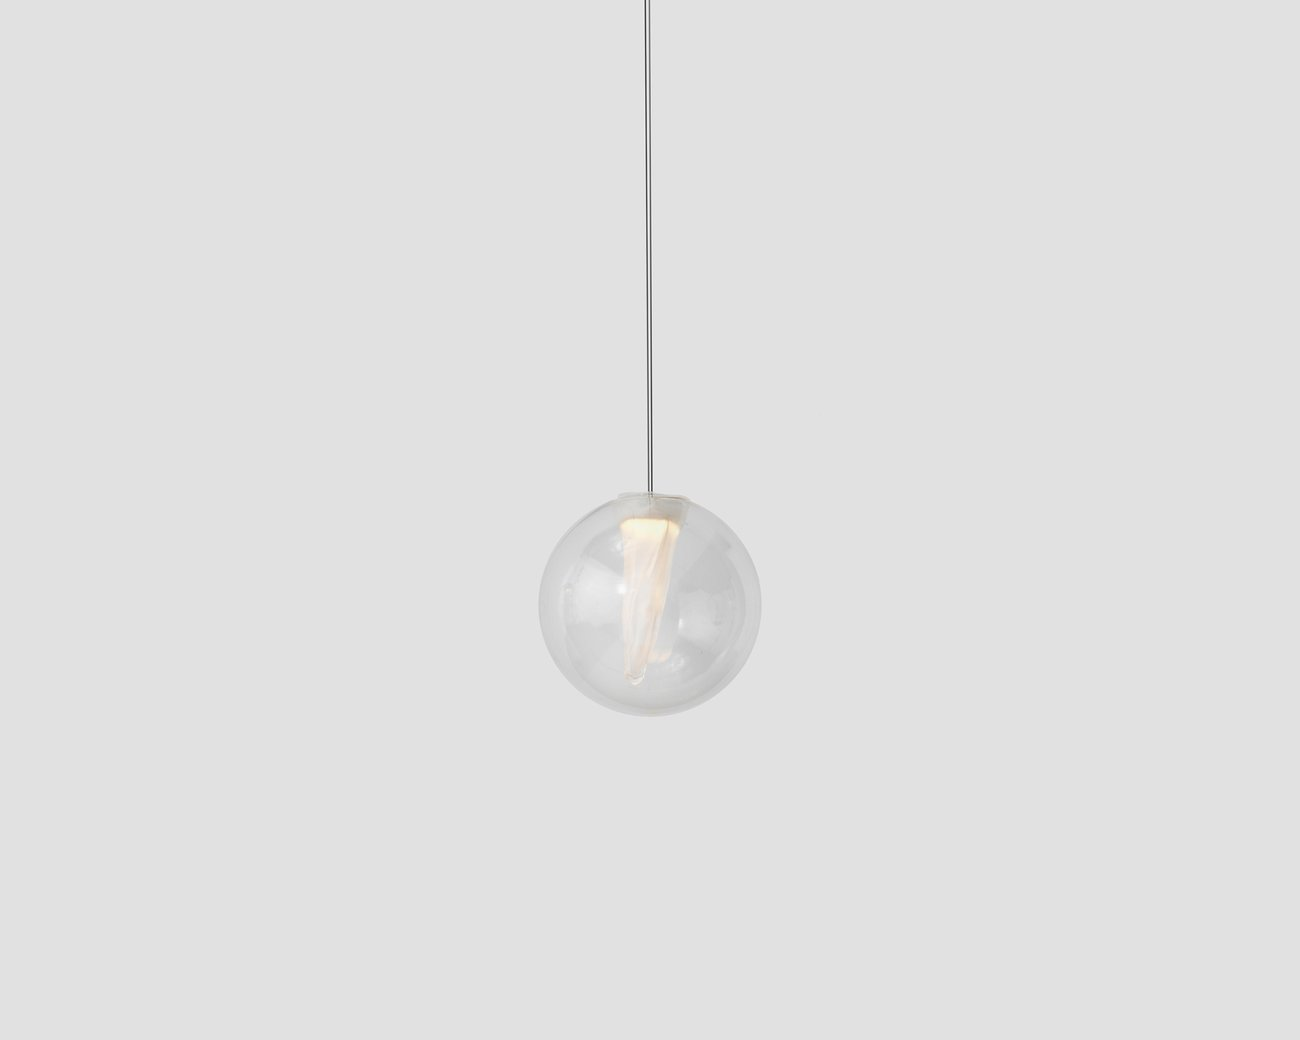 Image: uploads/2017_03/Resident-Torchon-Pendant-by-Cheshire-Architects-2.jpg